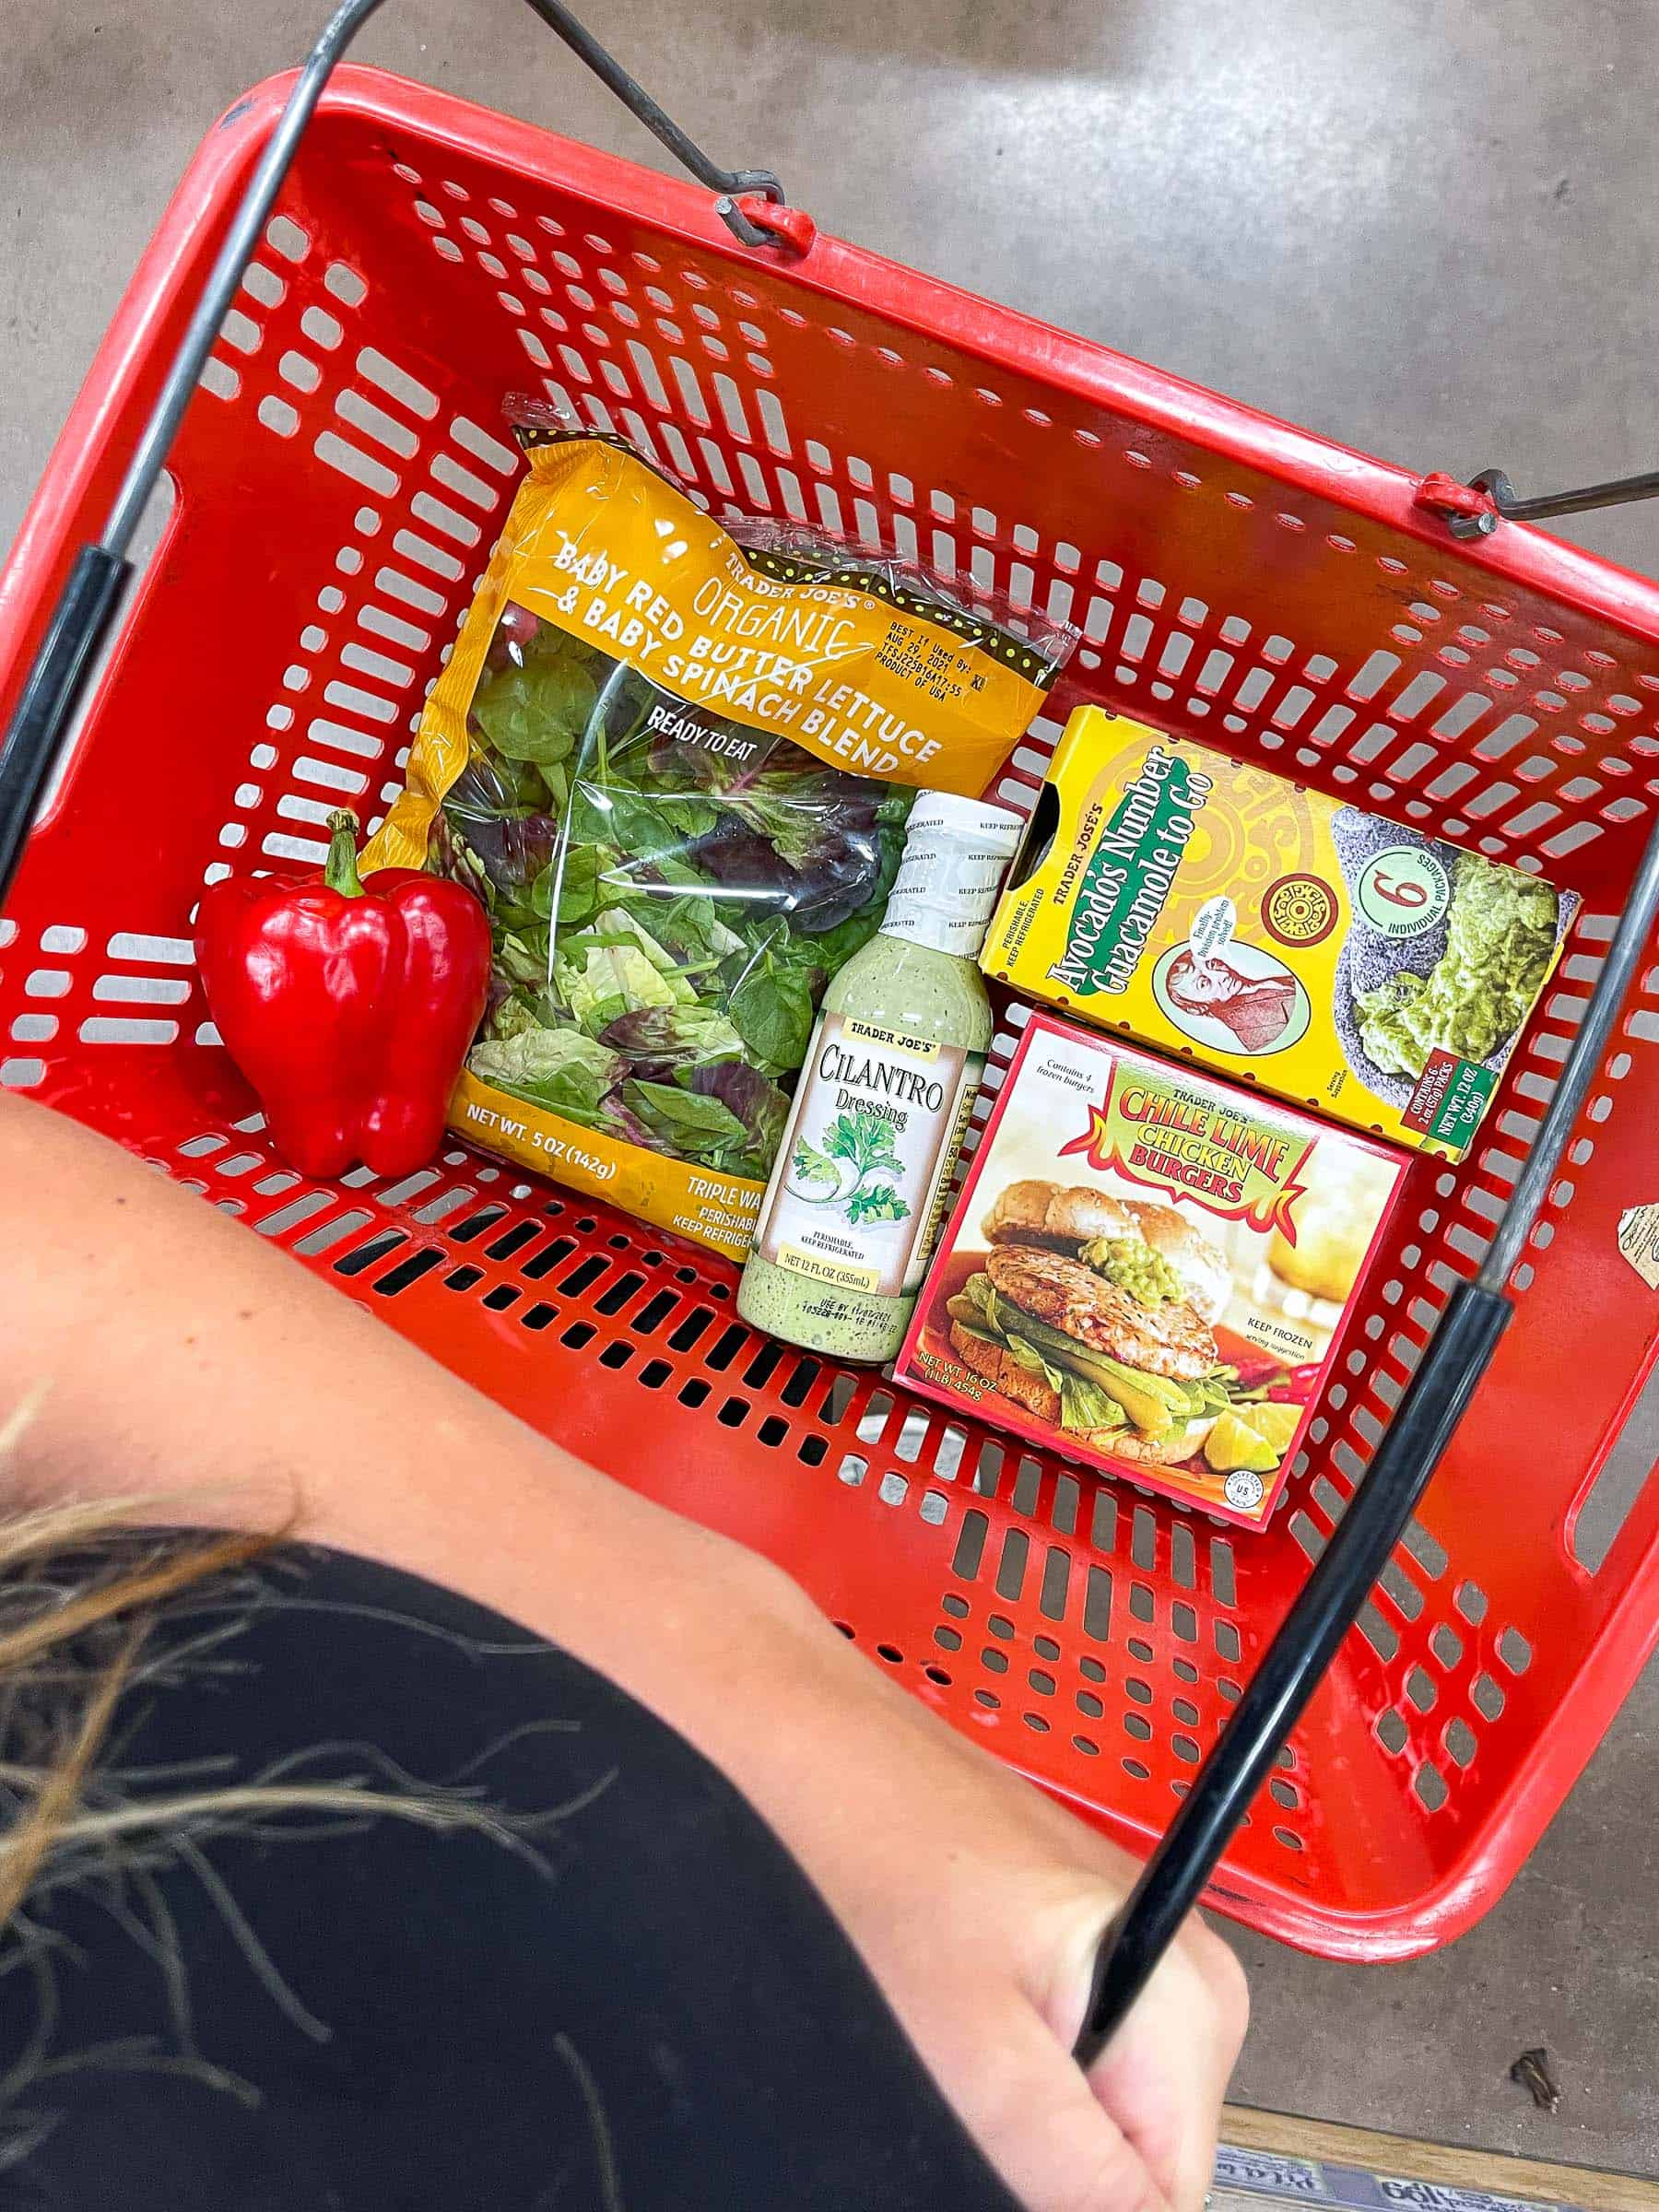 red shopping basket with red bell better, organic lettuce blend, cilantro dressing, guacamole, and chile lime burgers